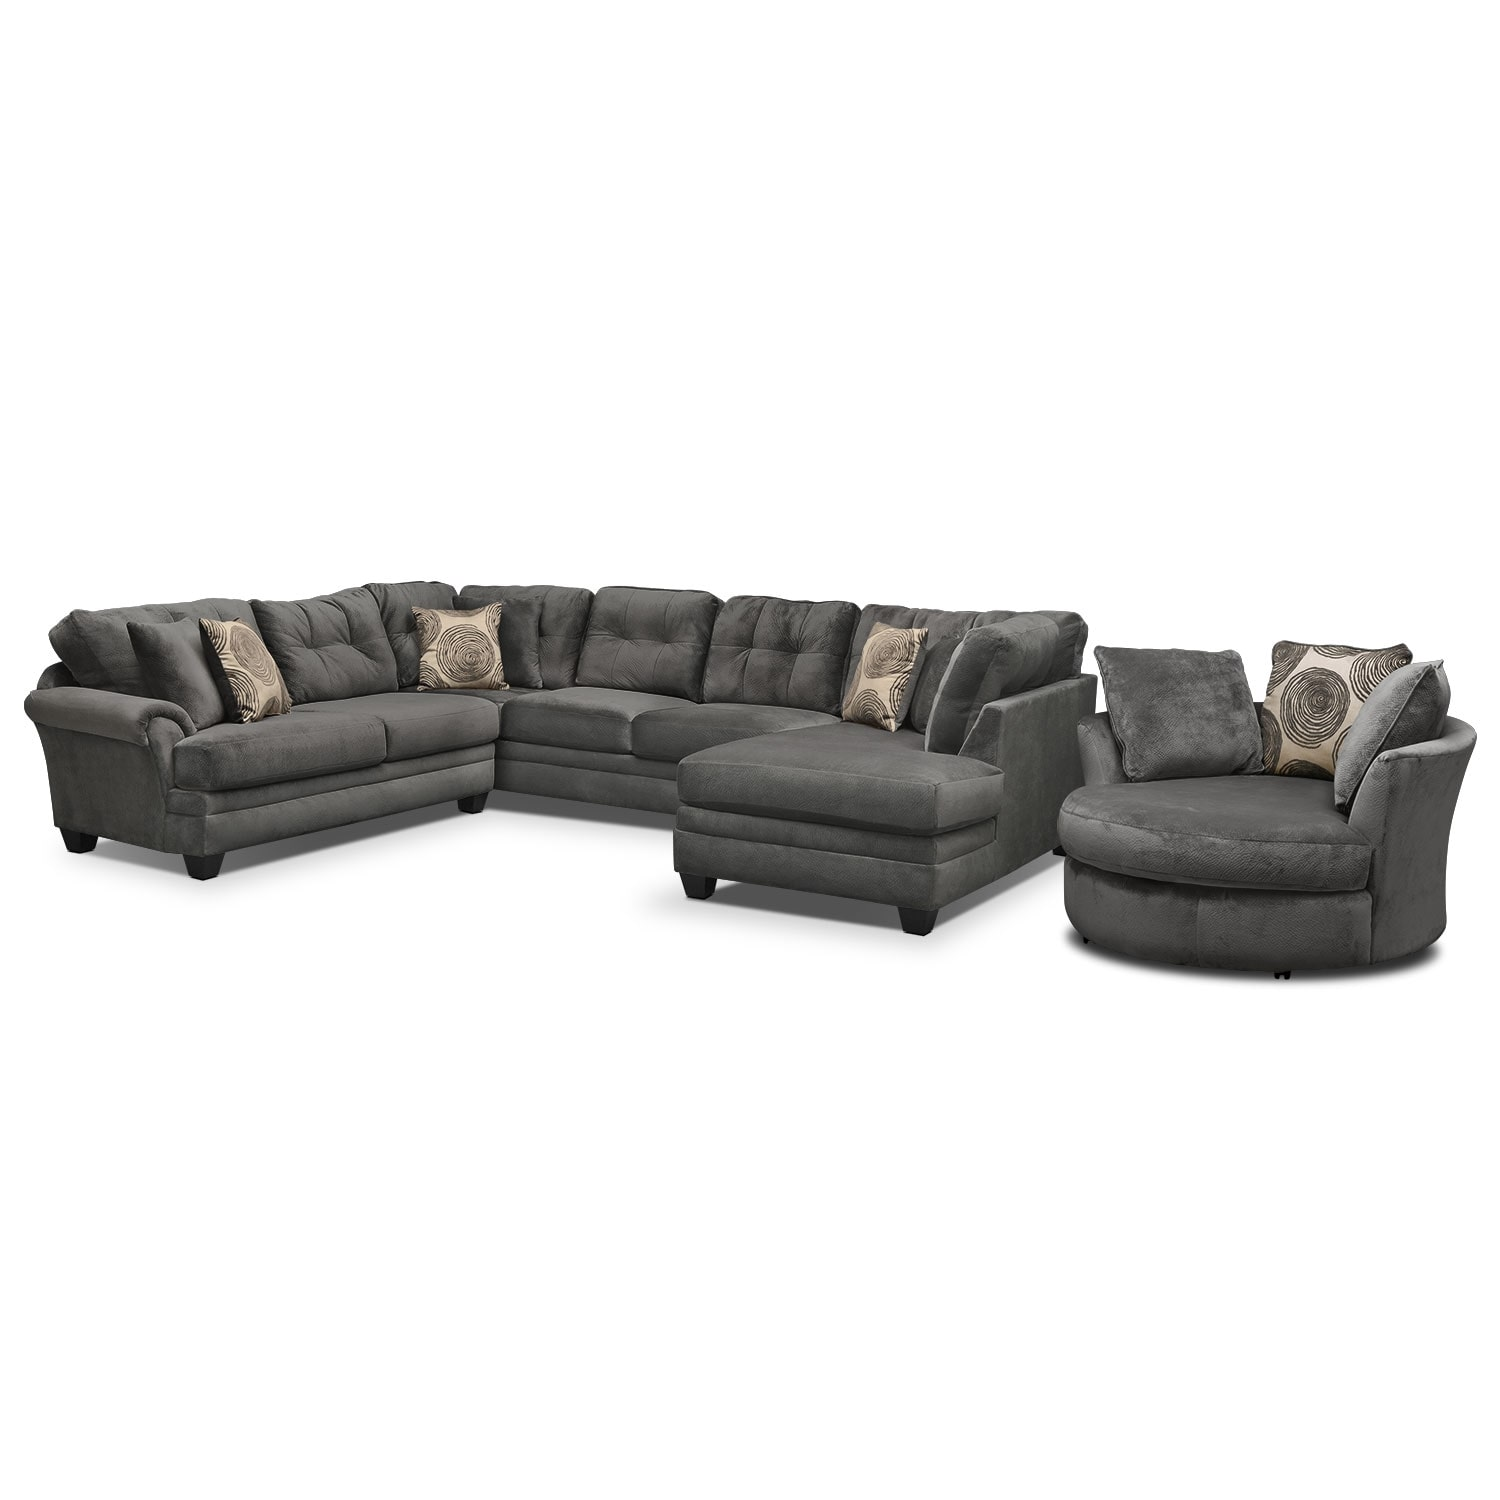 Living Room Furniture - Cordelle 3-Piece Sectional and Swivel Chair Set - Gray